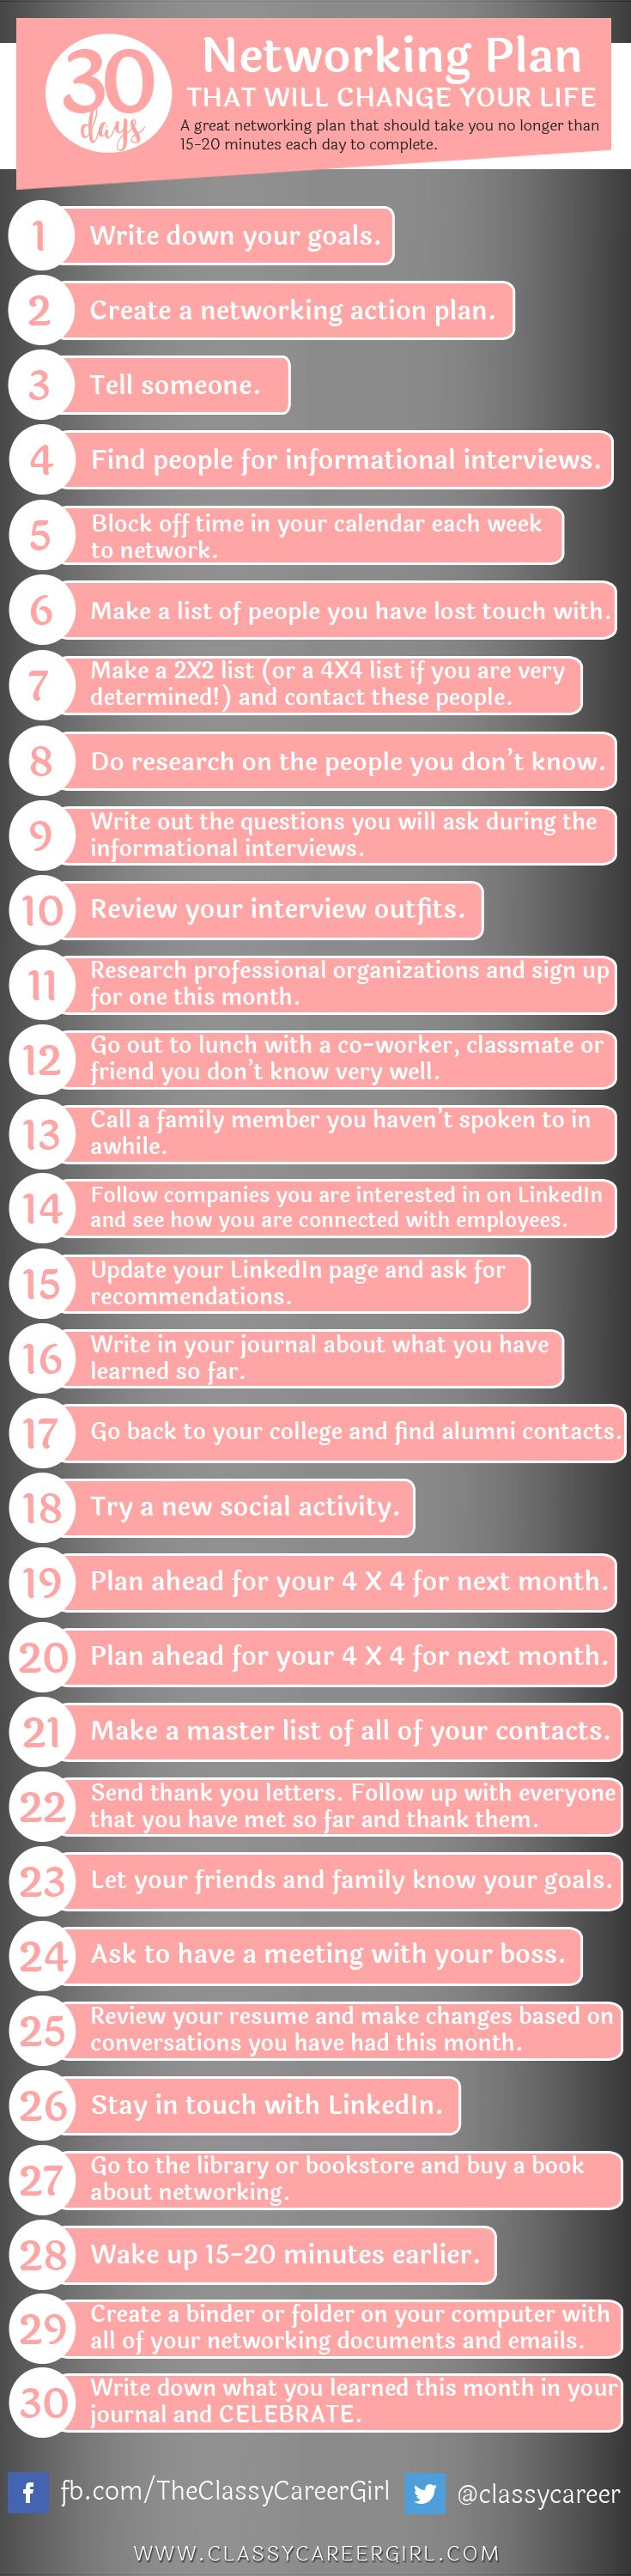 30 Day Networking challenge  Most people don't have a networking plan even though part of the difficulty with networking is that it can get pushed off your priority list if you don't make time for it. You can easily spend hours and hours finding and meeting new people.   Read More: http://www.classycareergirl.com/2015/12/networking-plan-30-day/